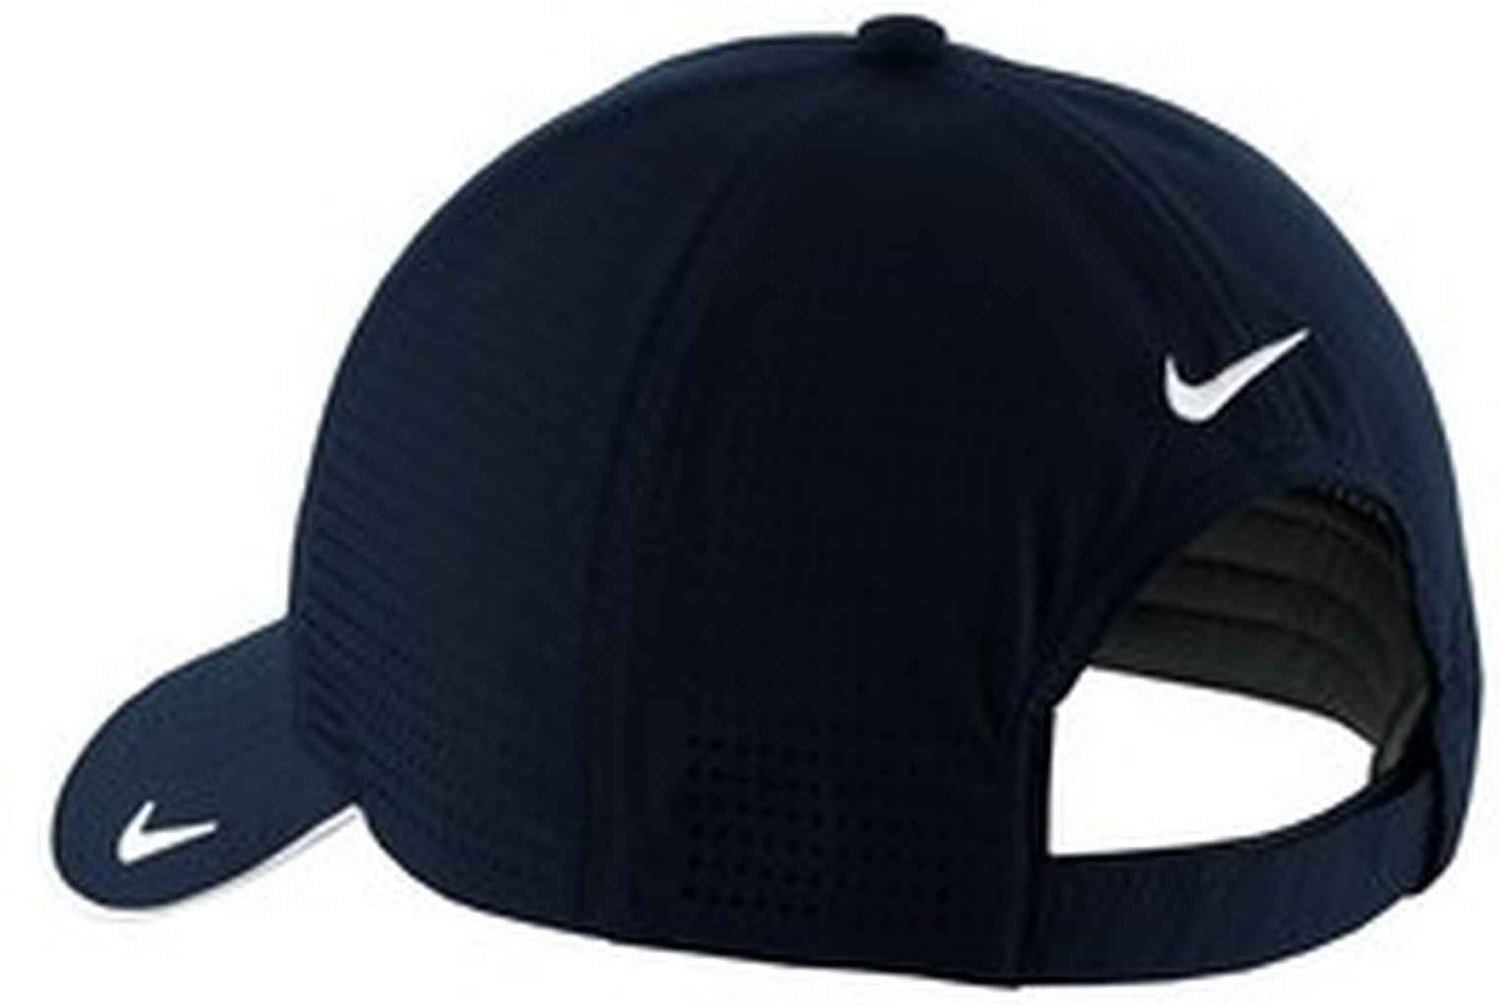 322f61808567 Buy Nike Golf - Dri-FIT Swoosh Perforated Cap in Cheap Price on  m.alibaba.com